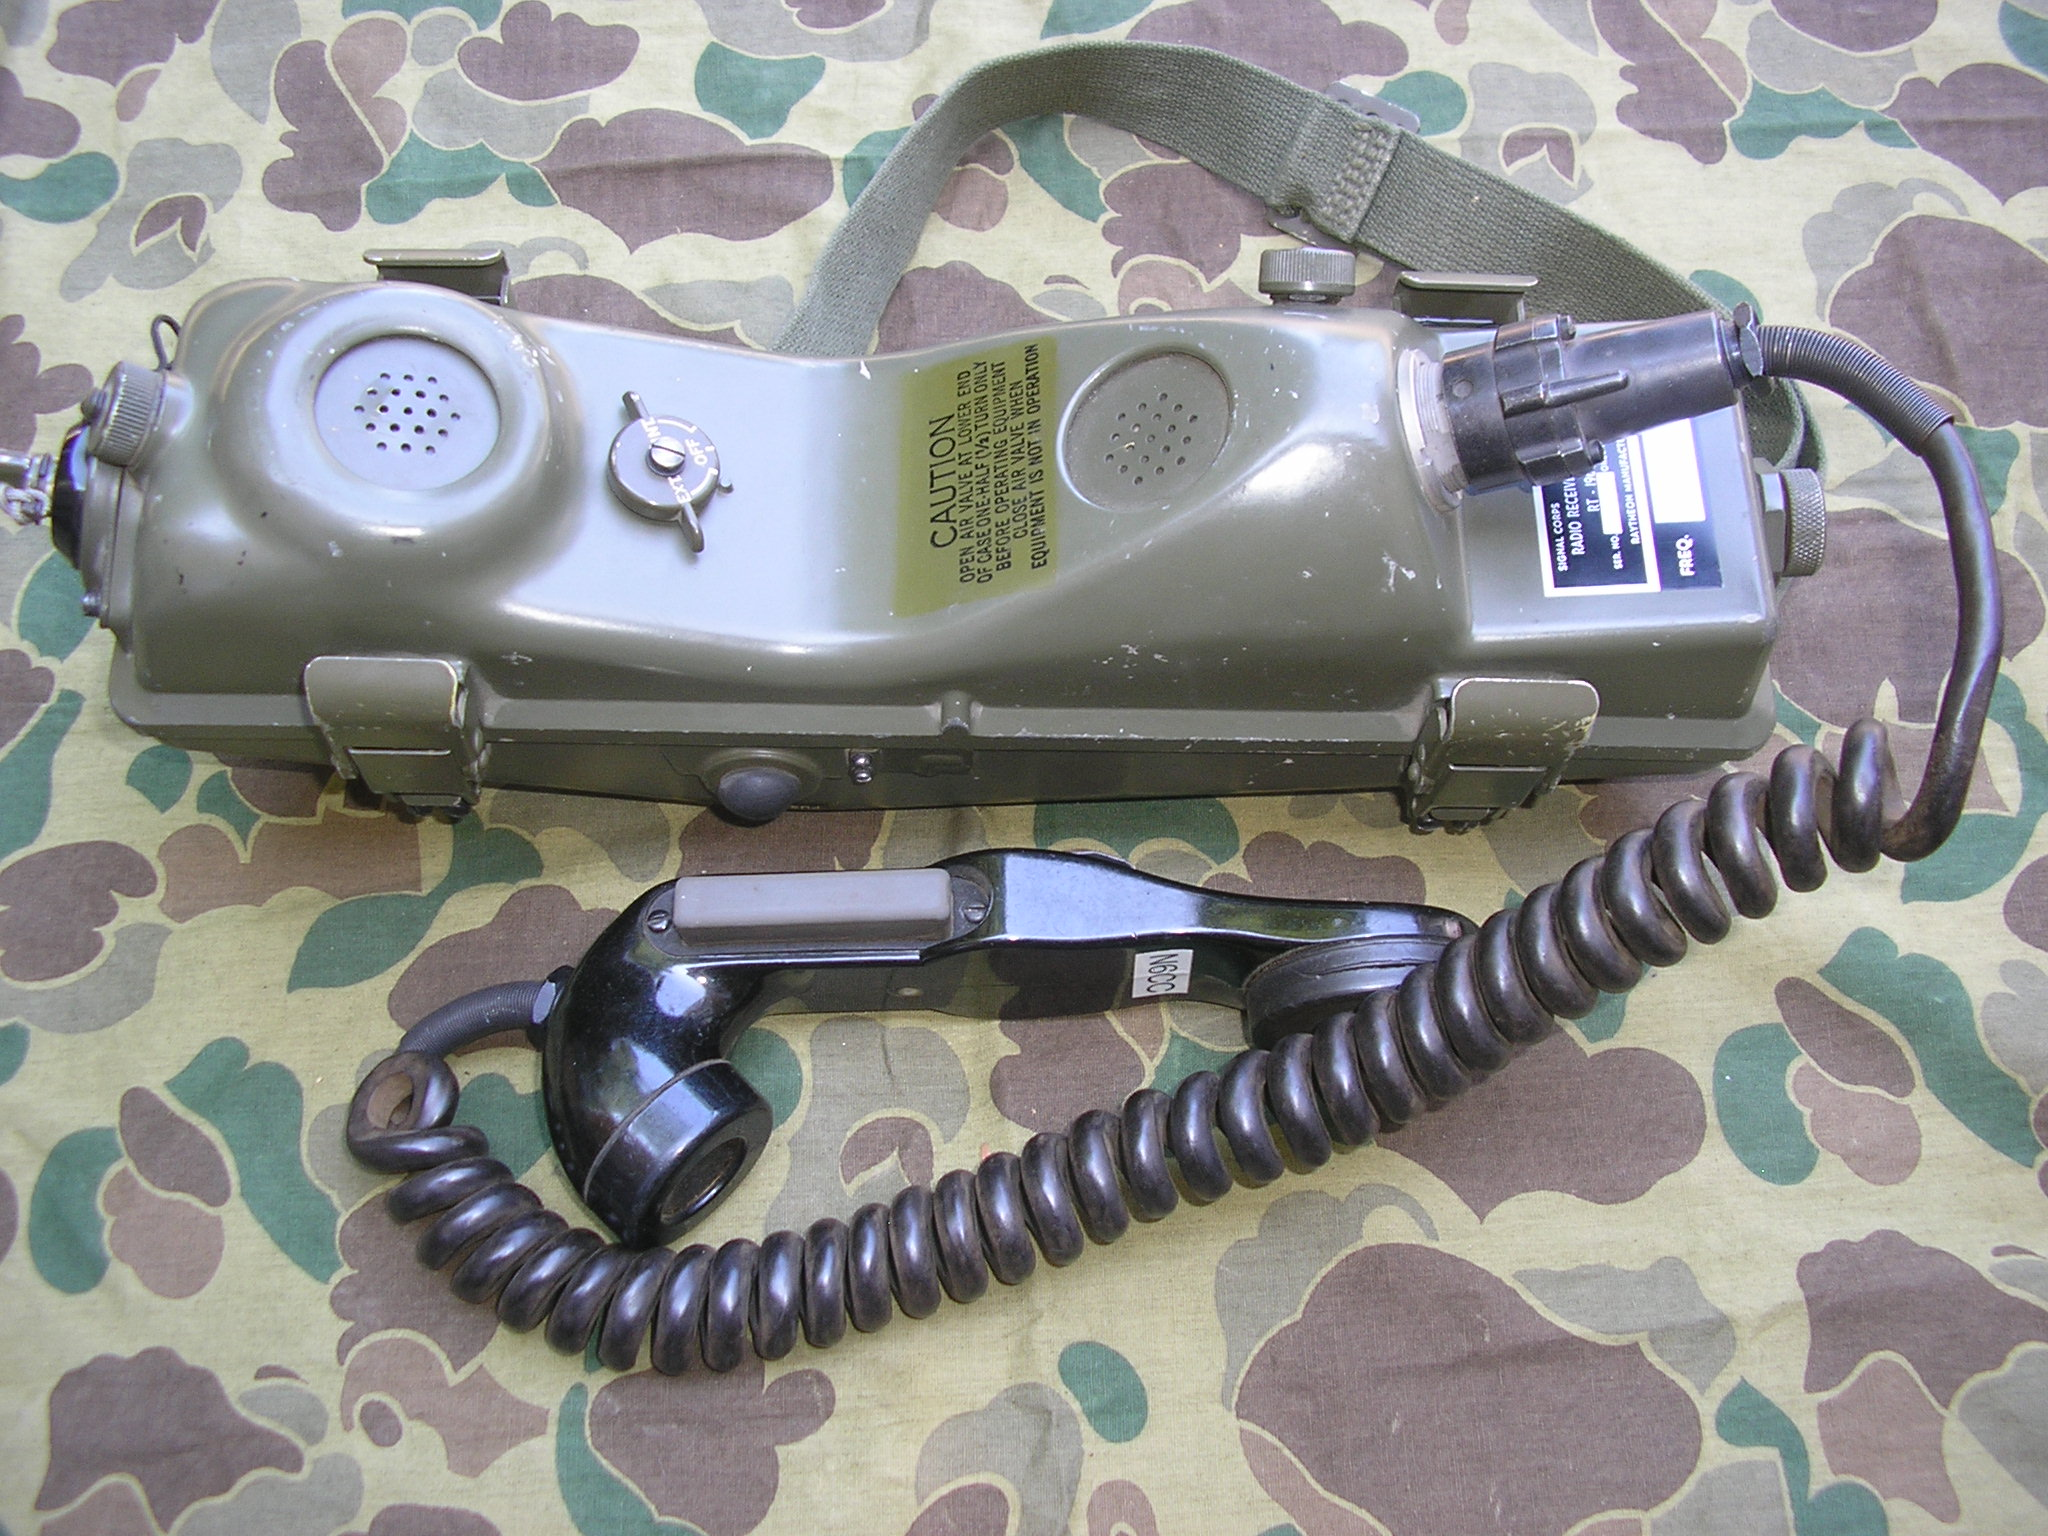 PRC-6 with external handset